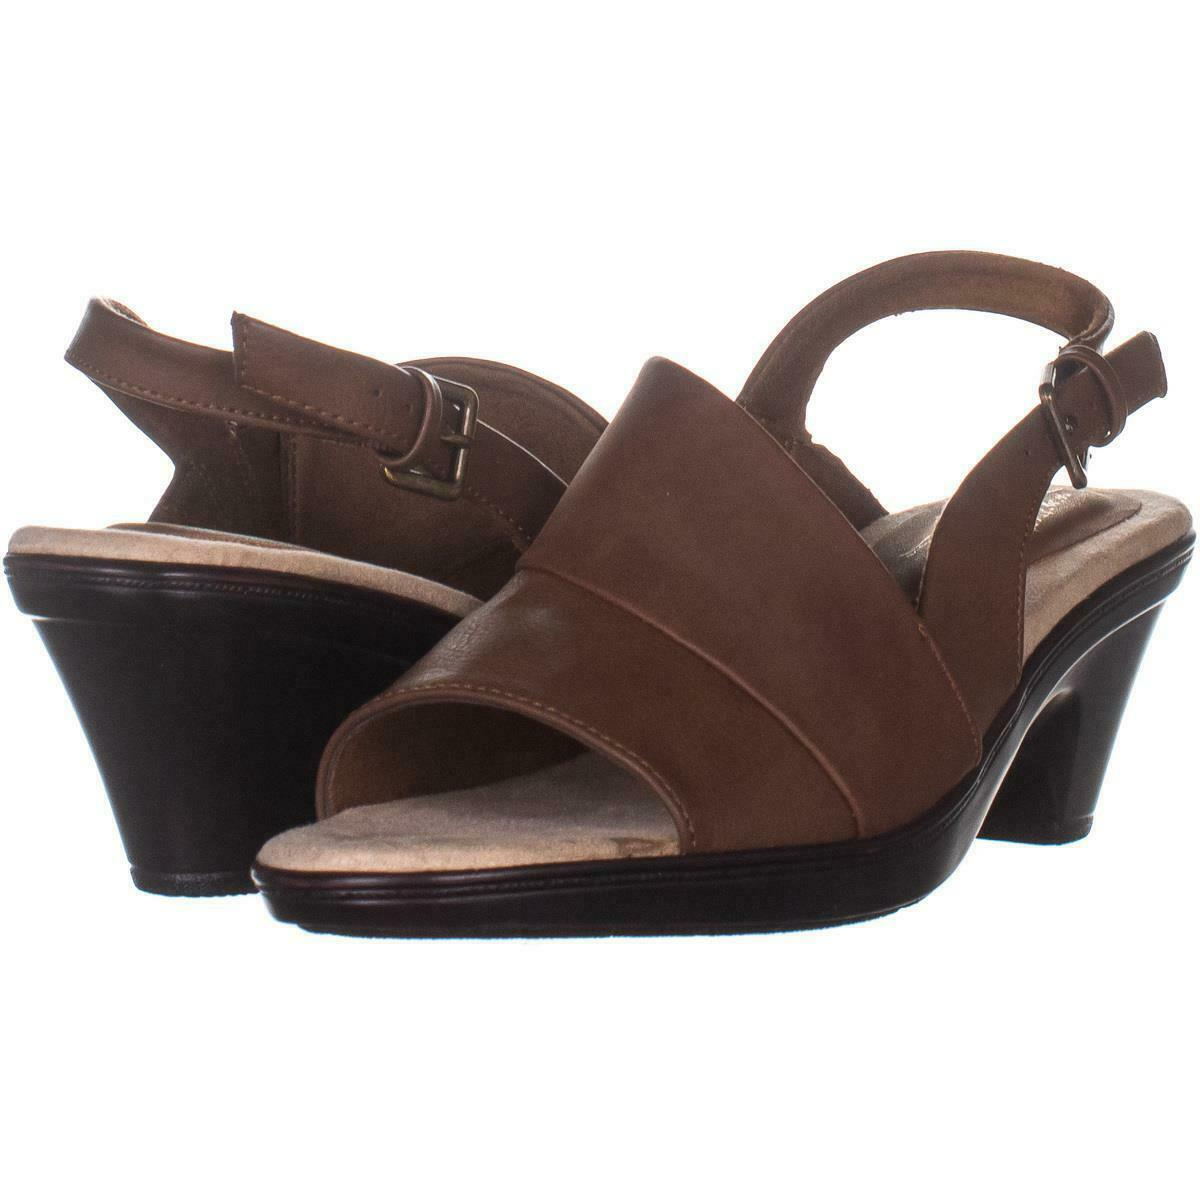 Primary image for Easy Street Irma Slingback Sandas 081, Tan, 7.5 US